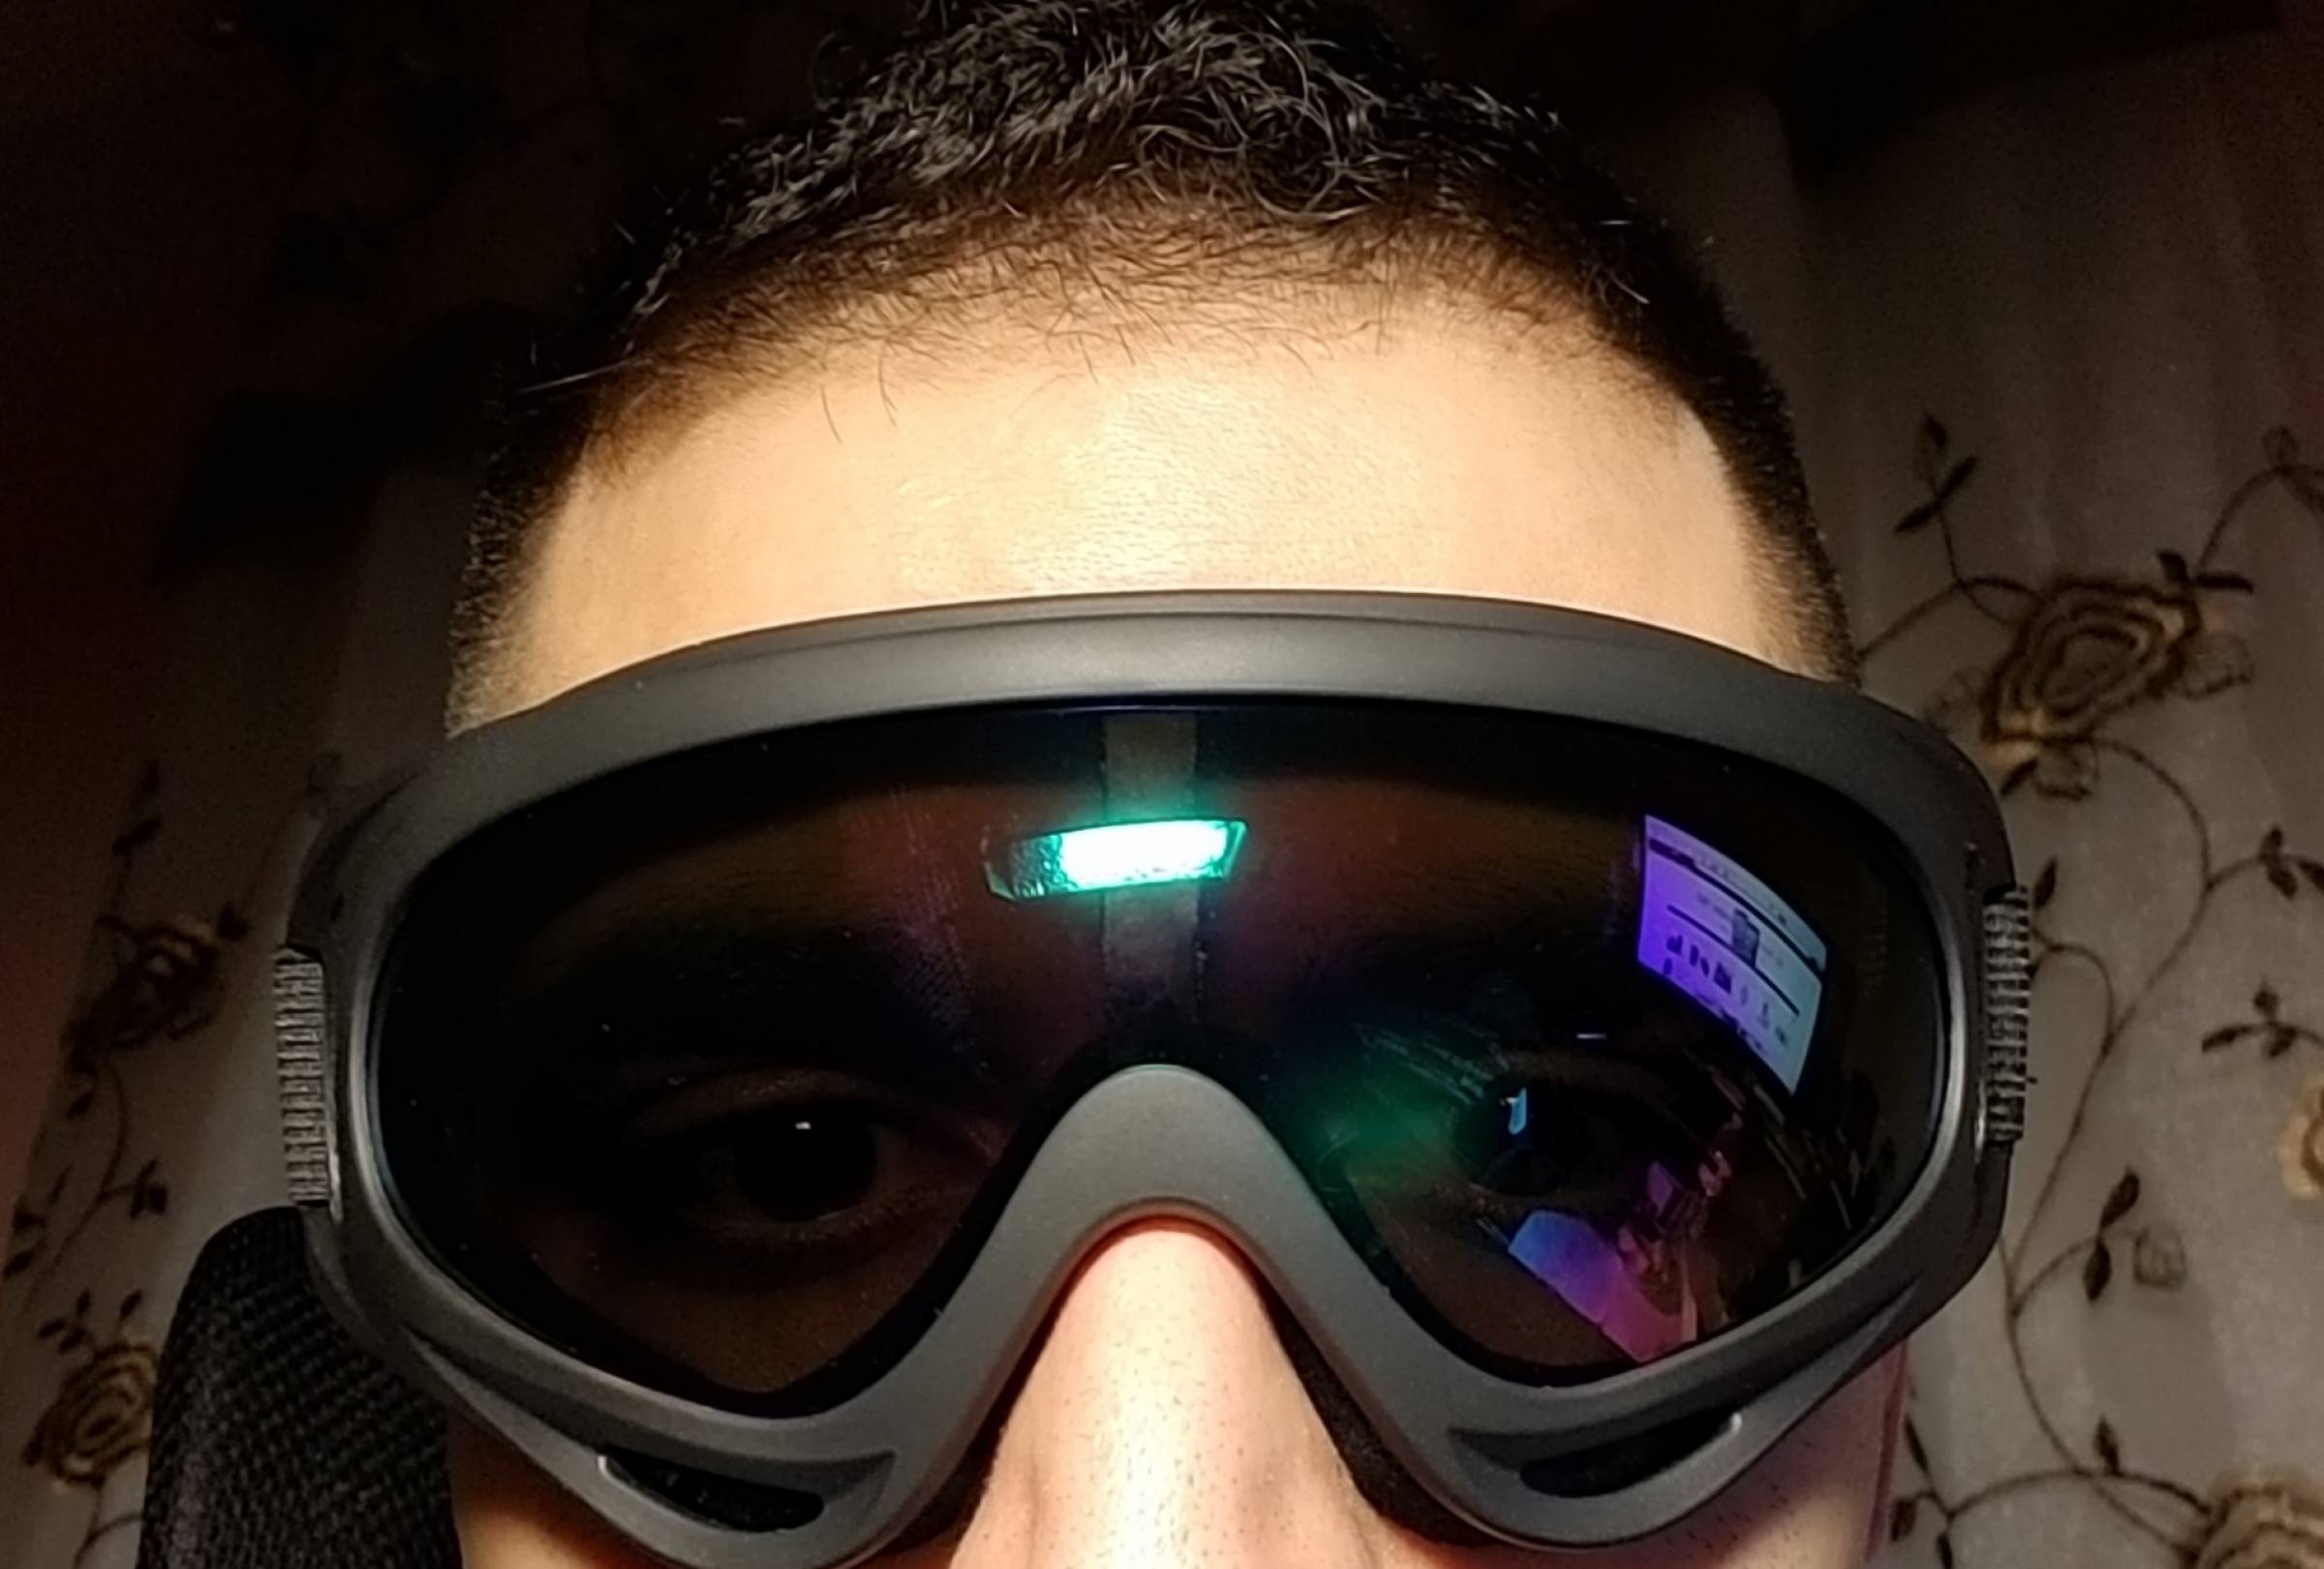 Overall, a nice and compact ski goggles with good build quality and without any scratches or distortions. (December 3, 2017)